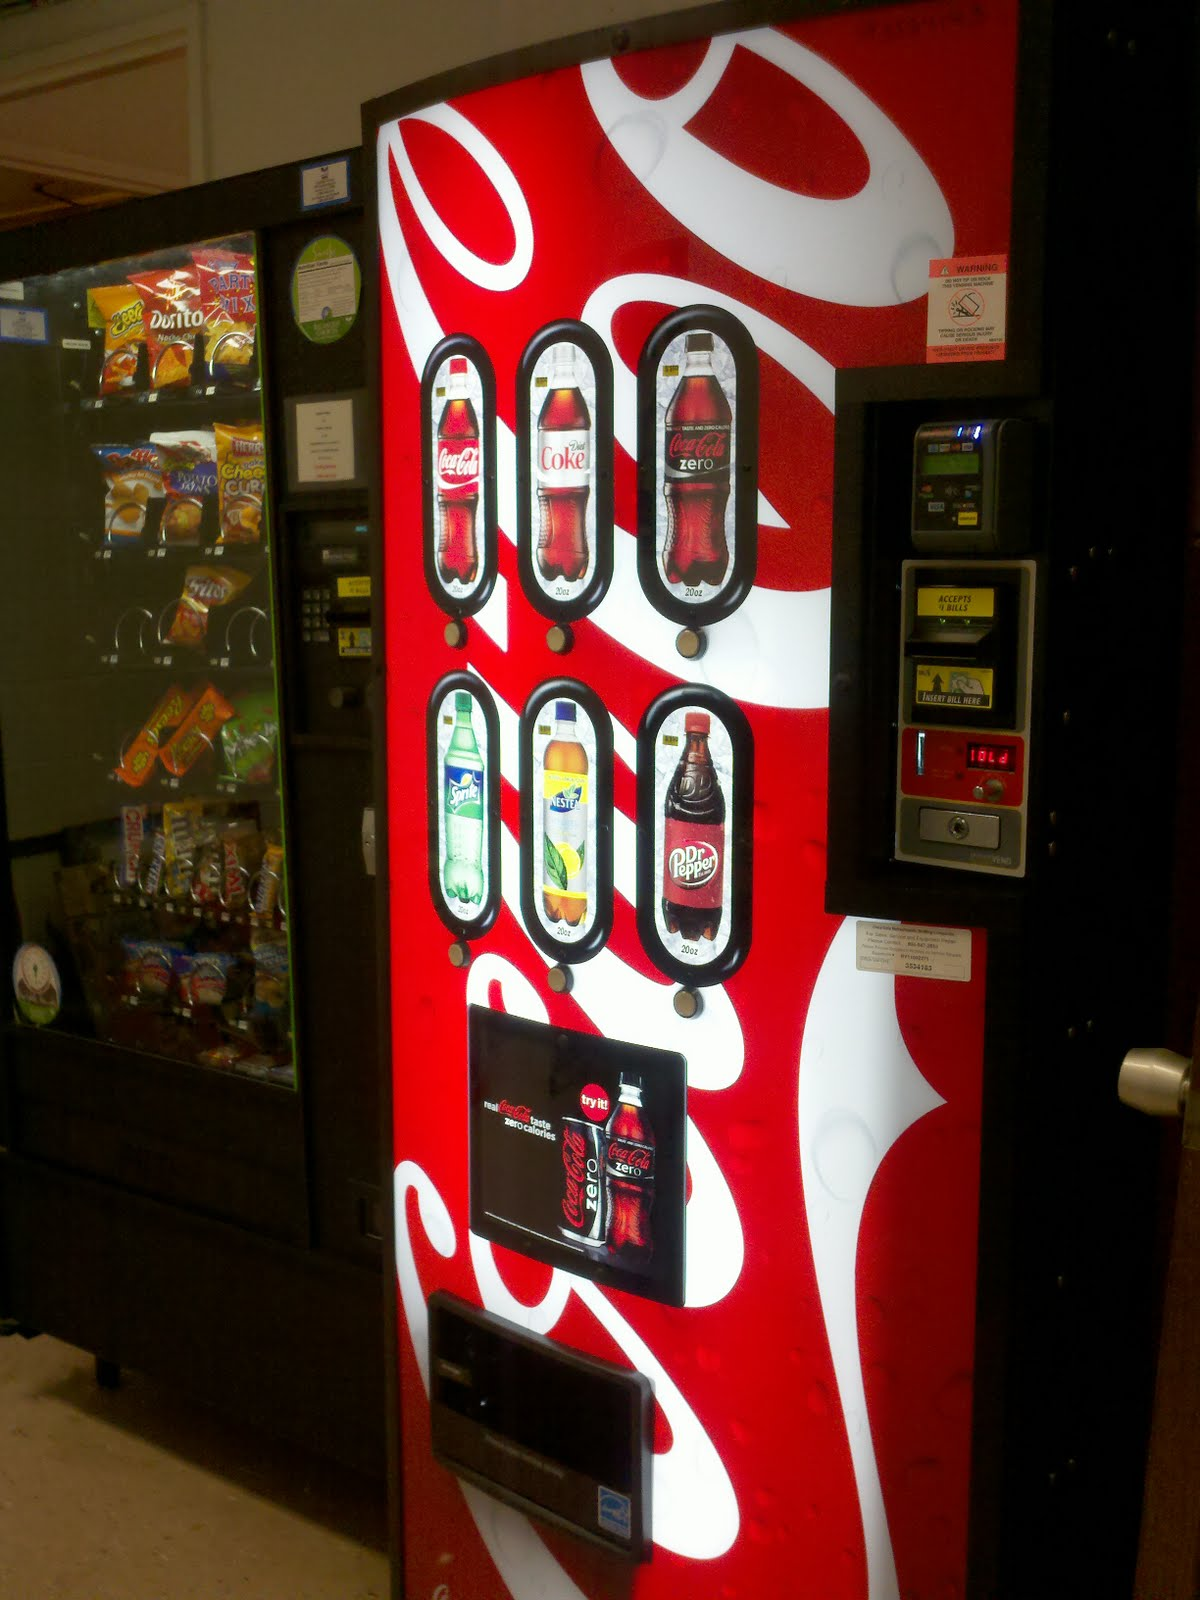 New Soda Vending Machine in Library - Horrmann Library